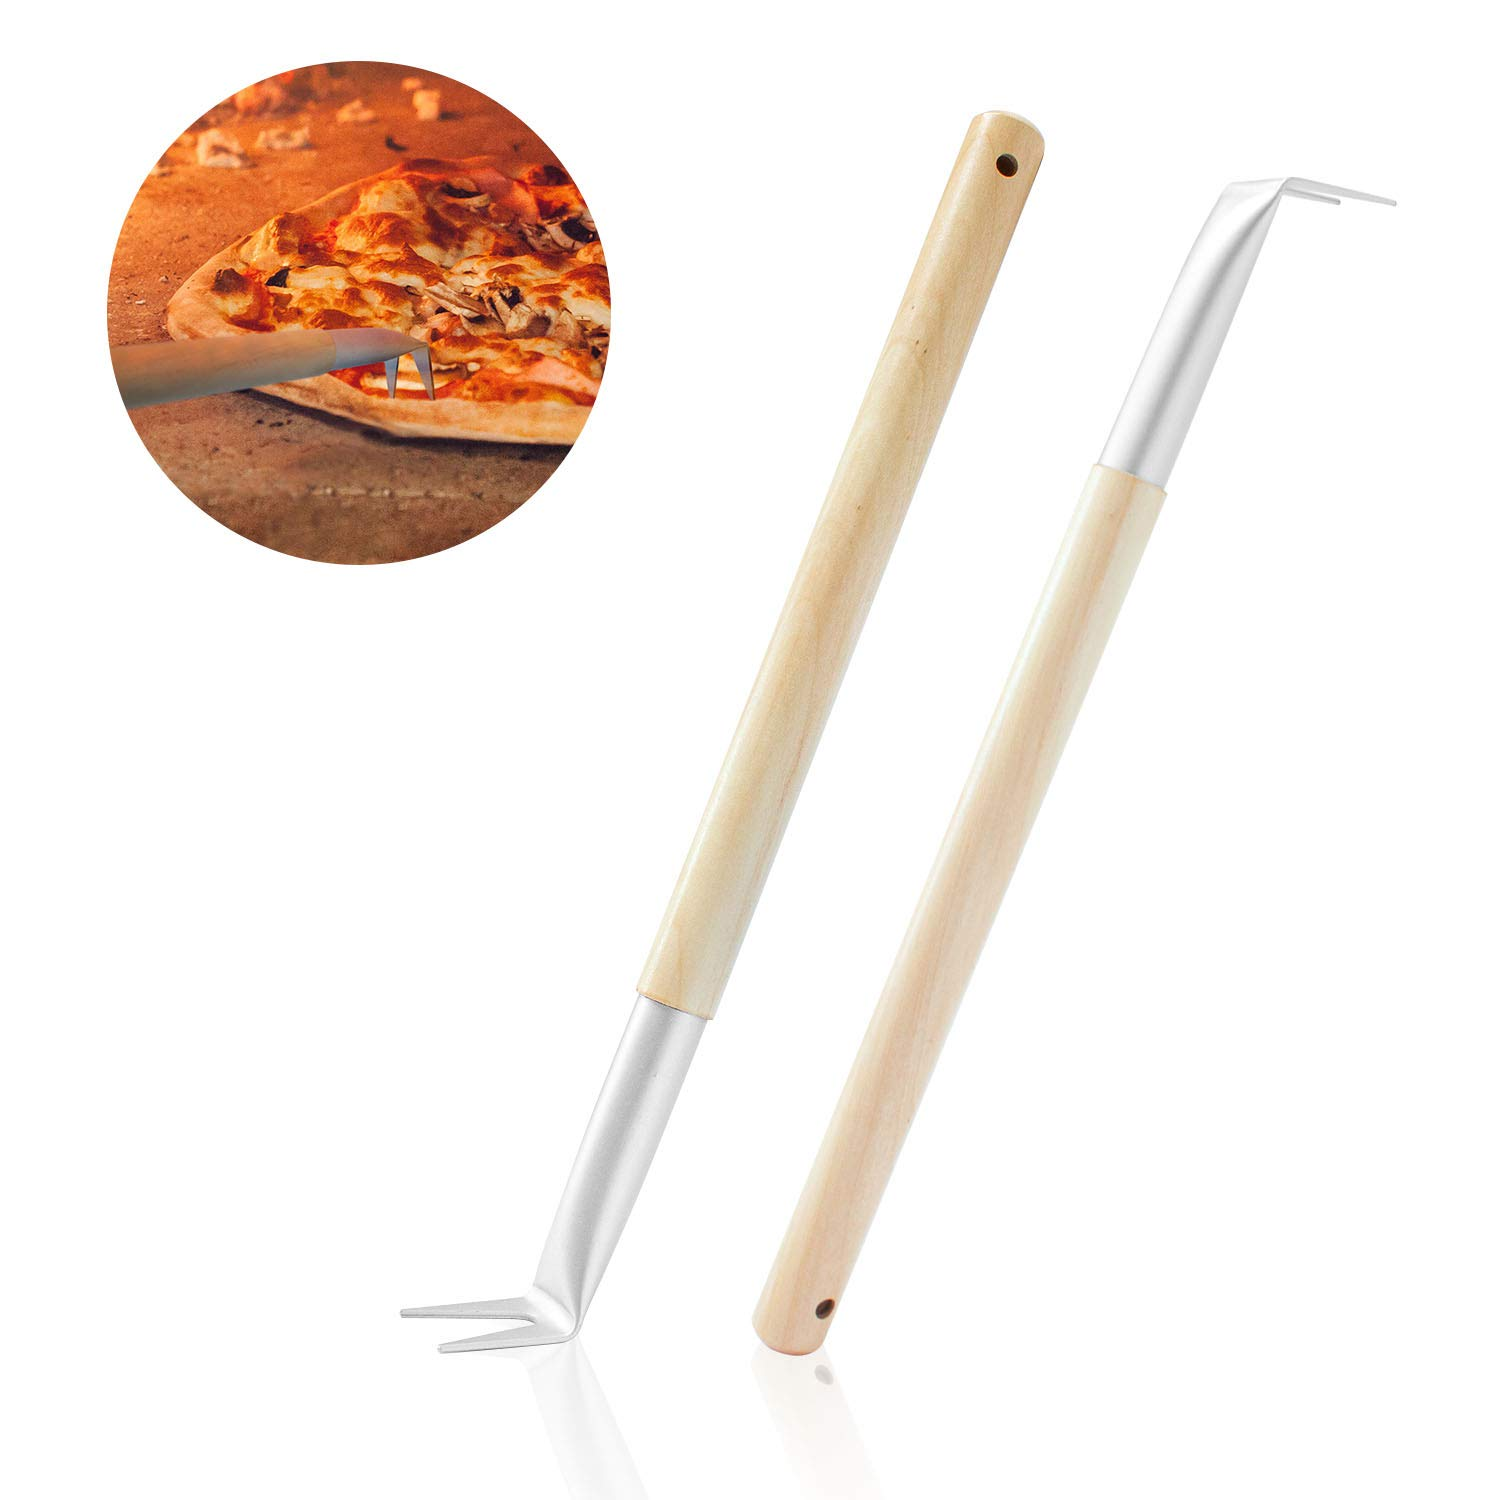 Aluminum 17.5 inch Pizza Spinner Turning Fork with Wooden Handle and Leather Strap (2-Pack) - Outdoor Pizza Oven Accessories